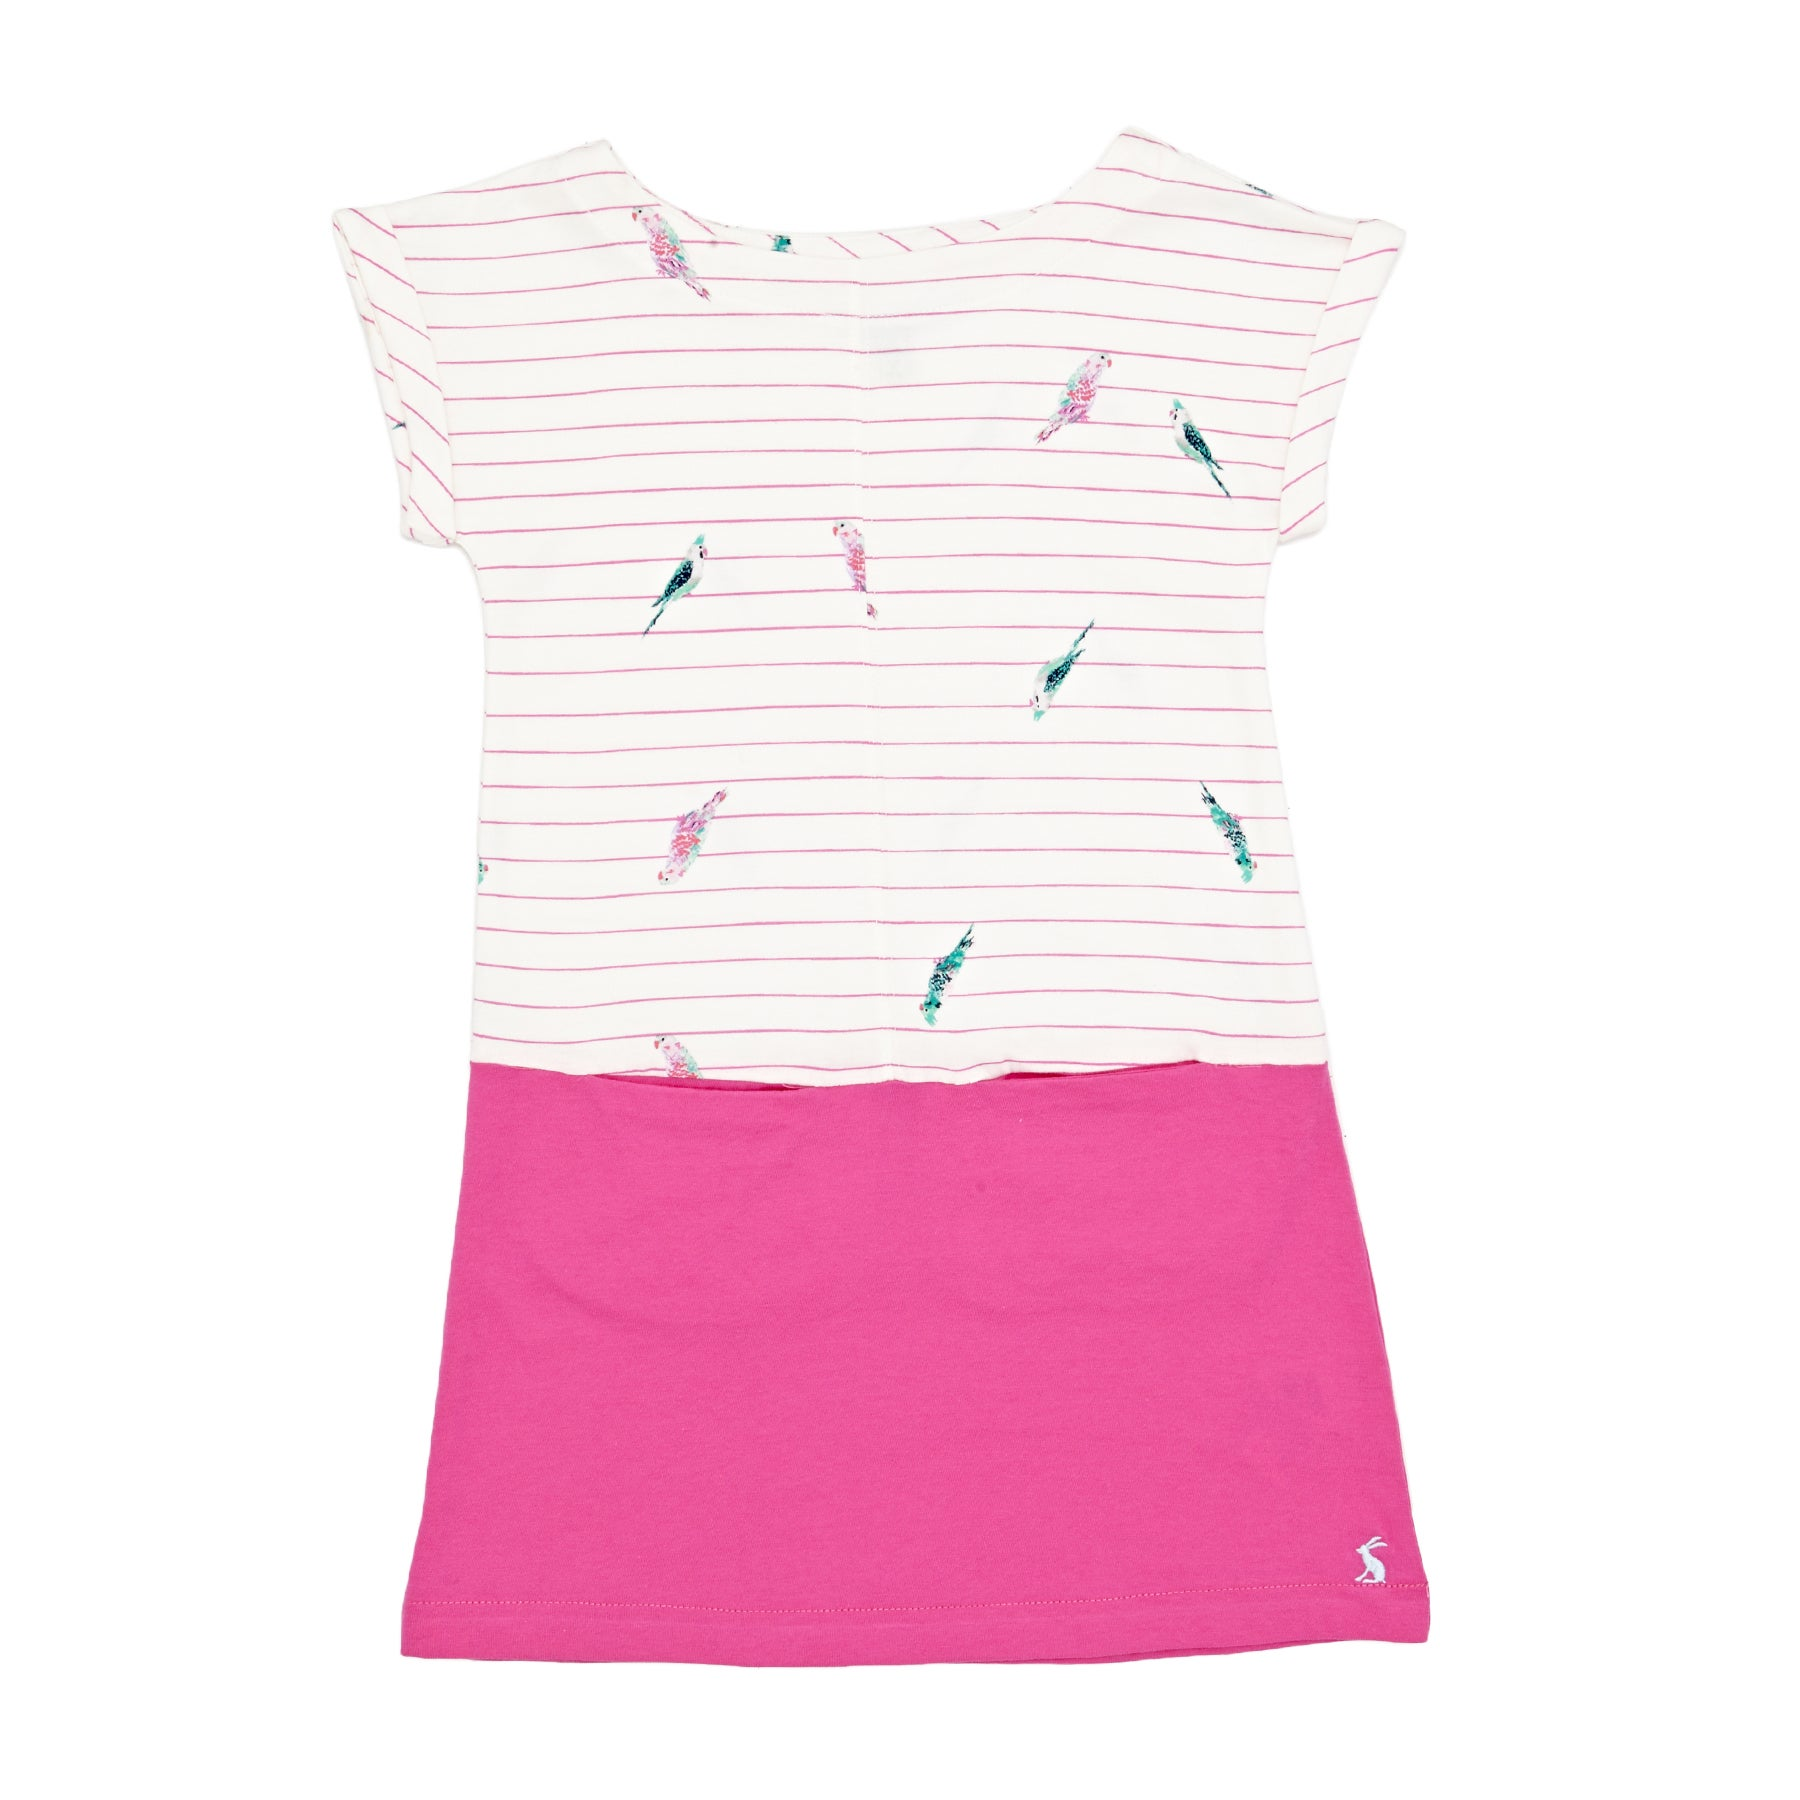 Joules Karolina Girls Dress - Bright Pink Stripe